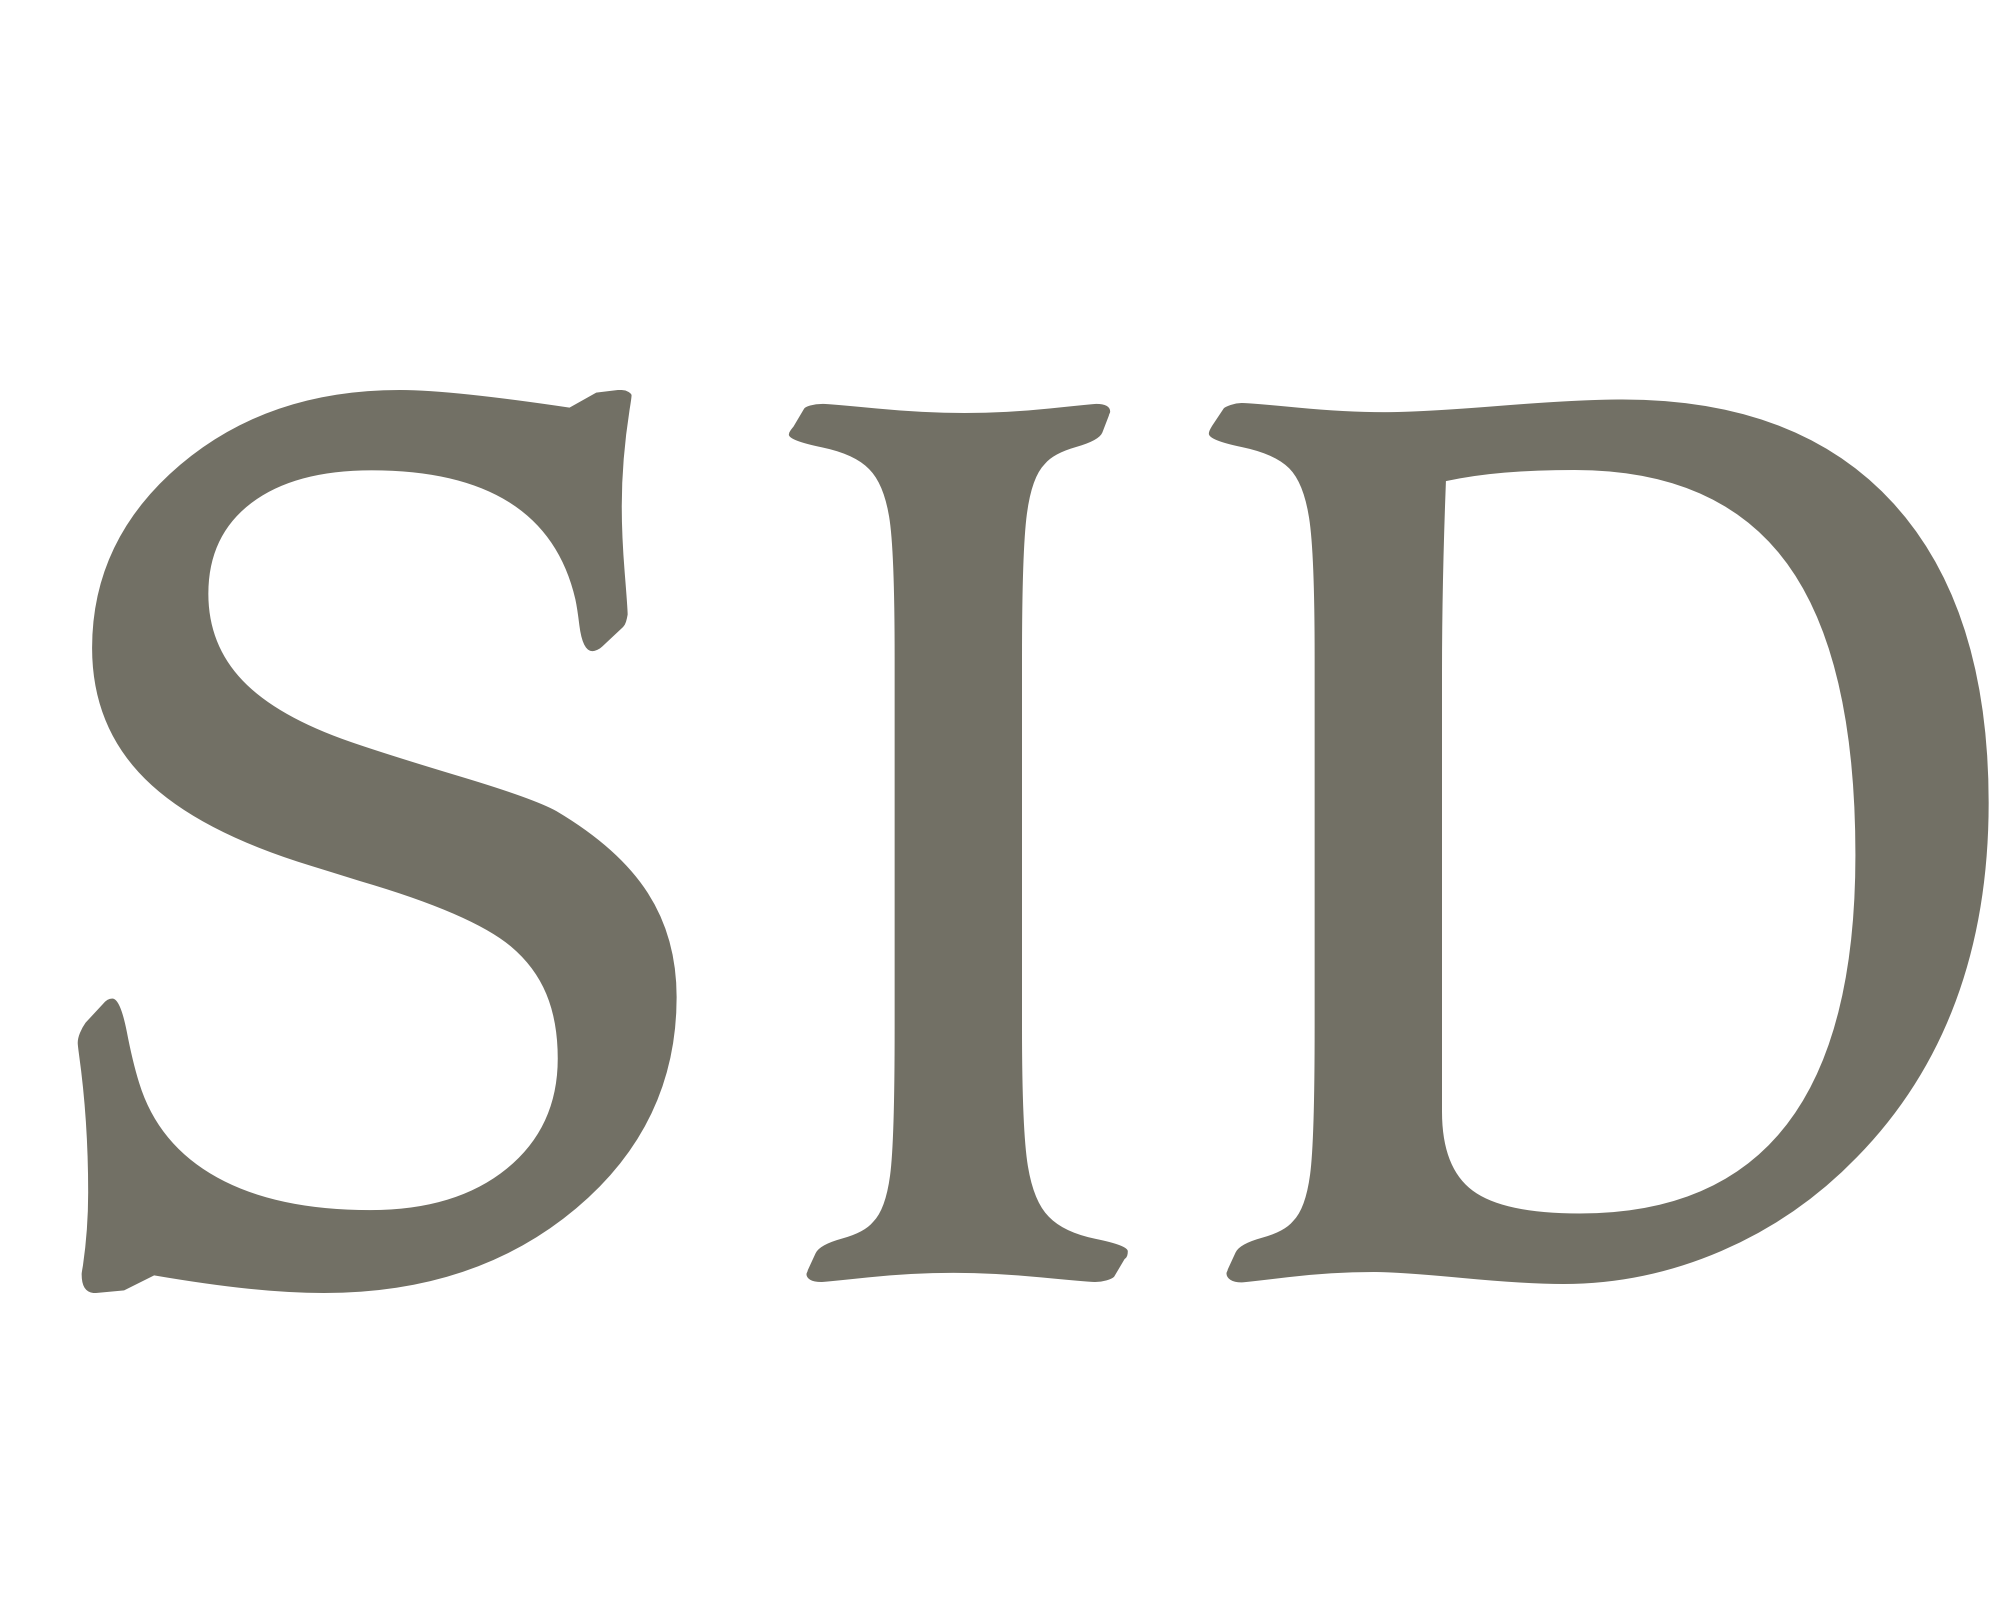 Sid - Name's Meaning of Sid